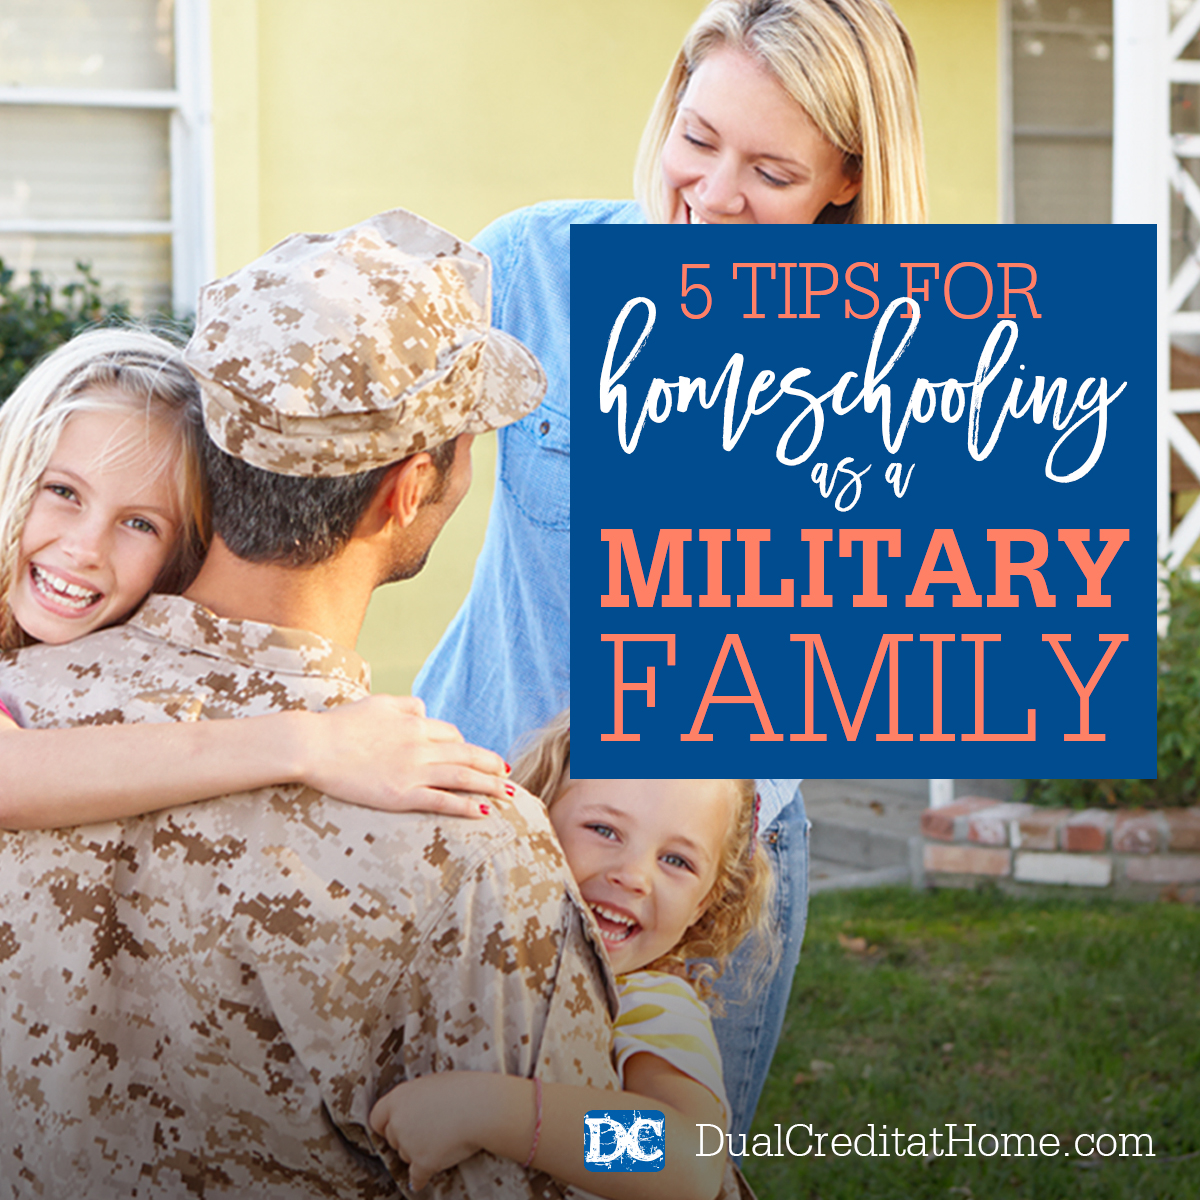 5 Tips for Homeschooling as a Military Family